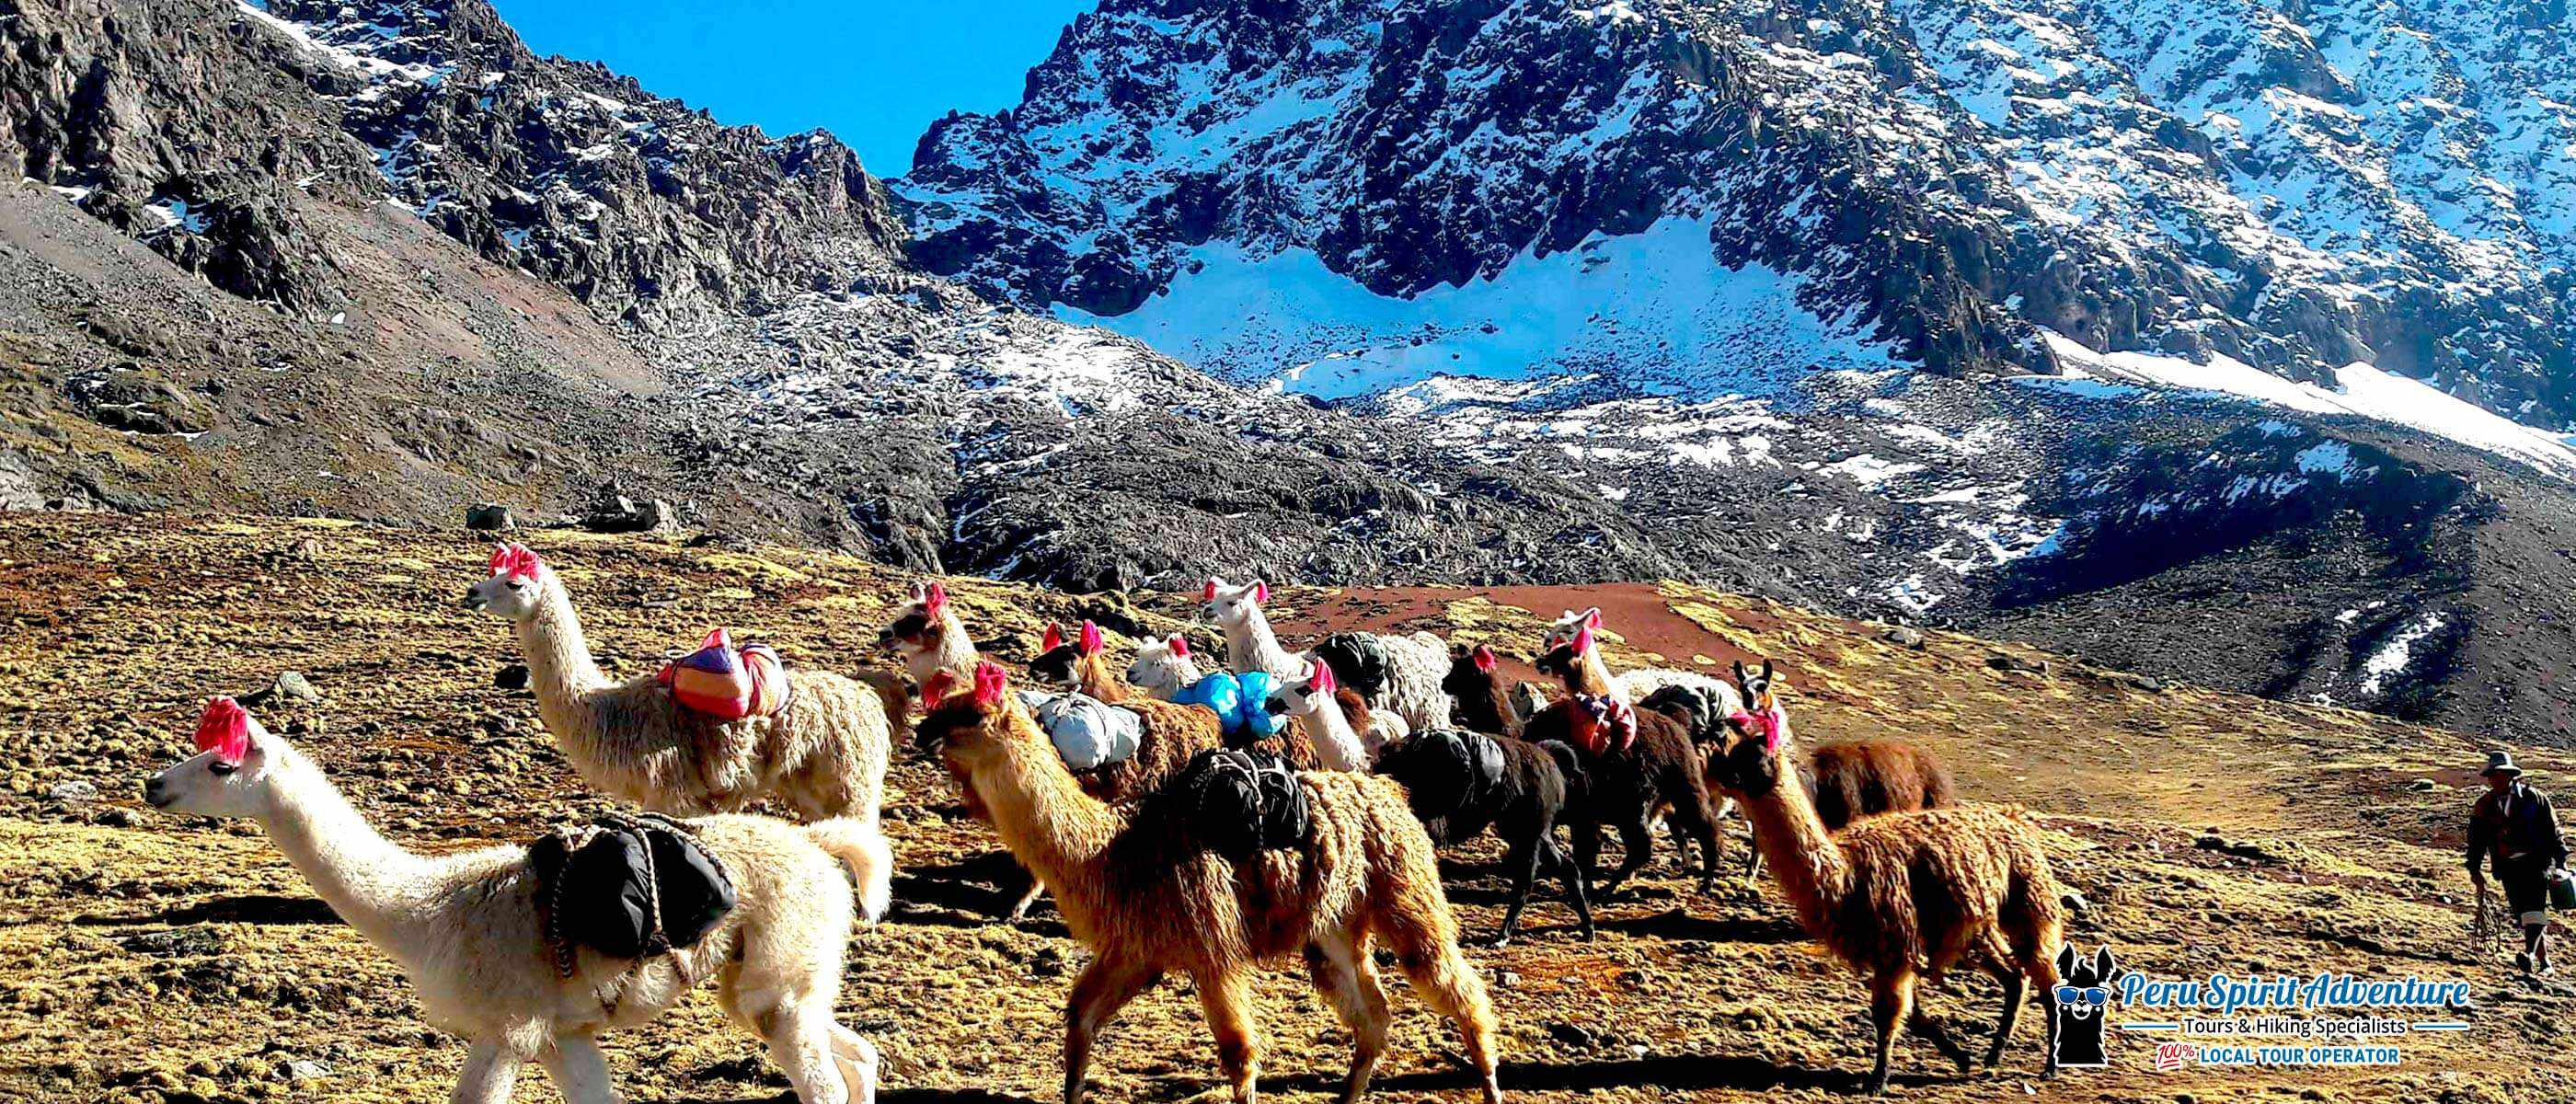 Trek in a wild landscape filled with llamas and alpacas on Ausangate trail